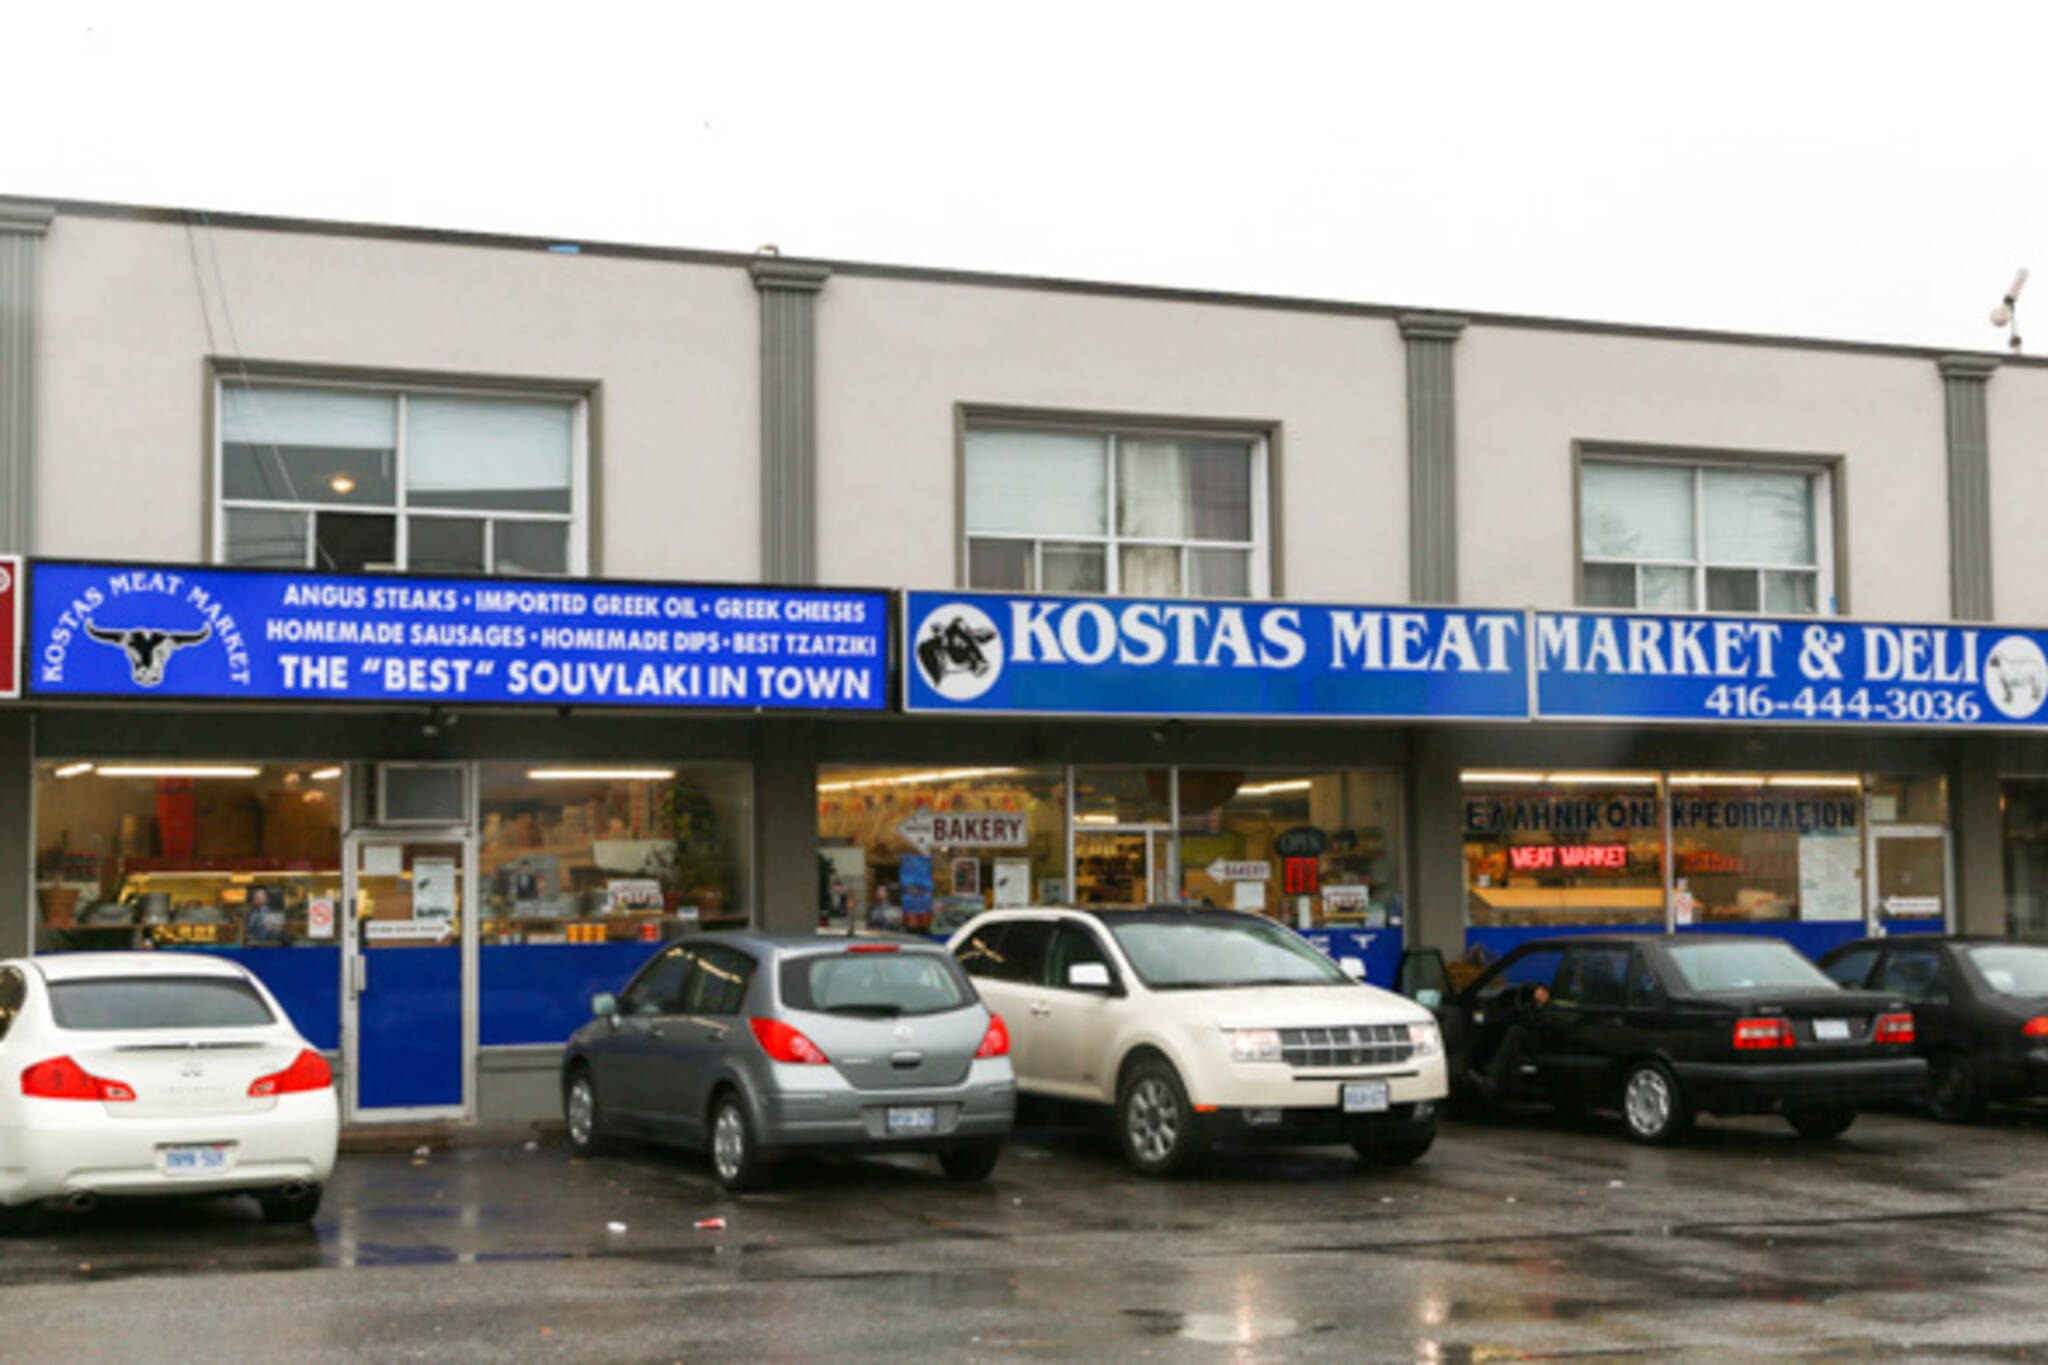 kostas meat market and deli